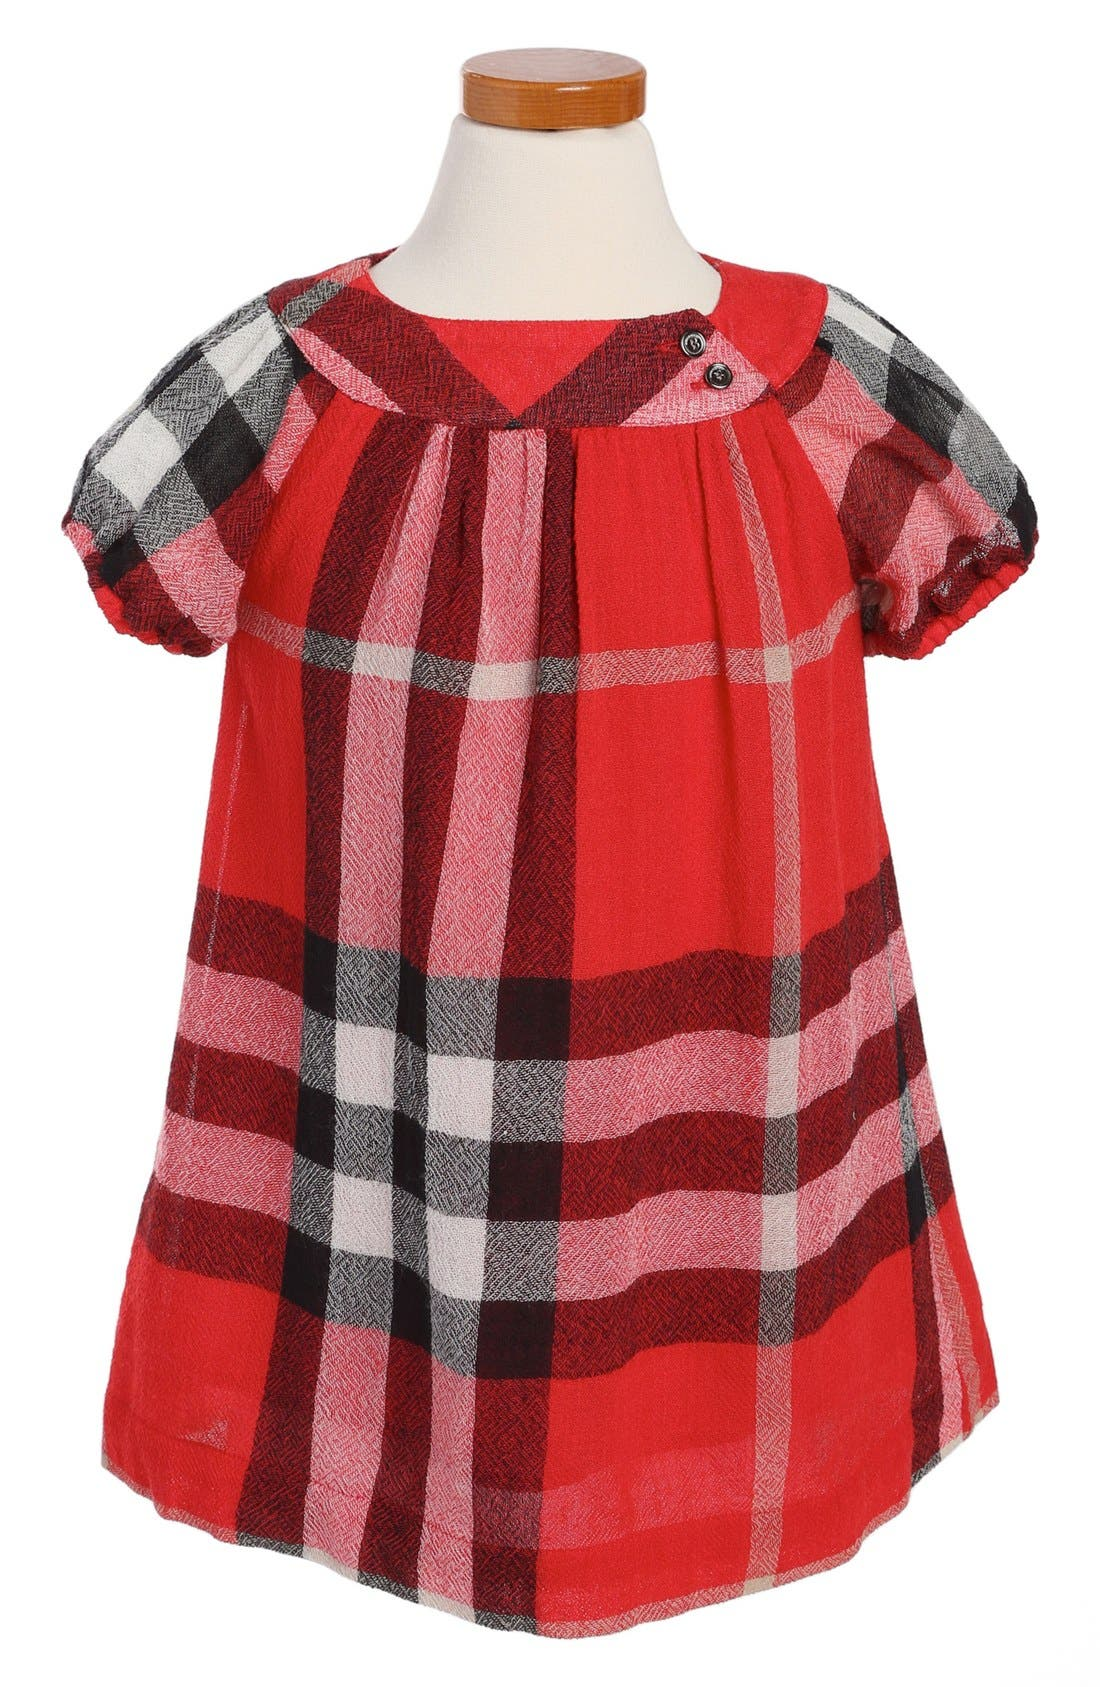 Main Image - Burberry 'Delany' Dress (Toddler Girls)